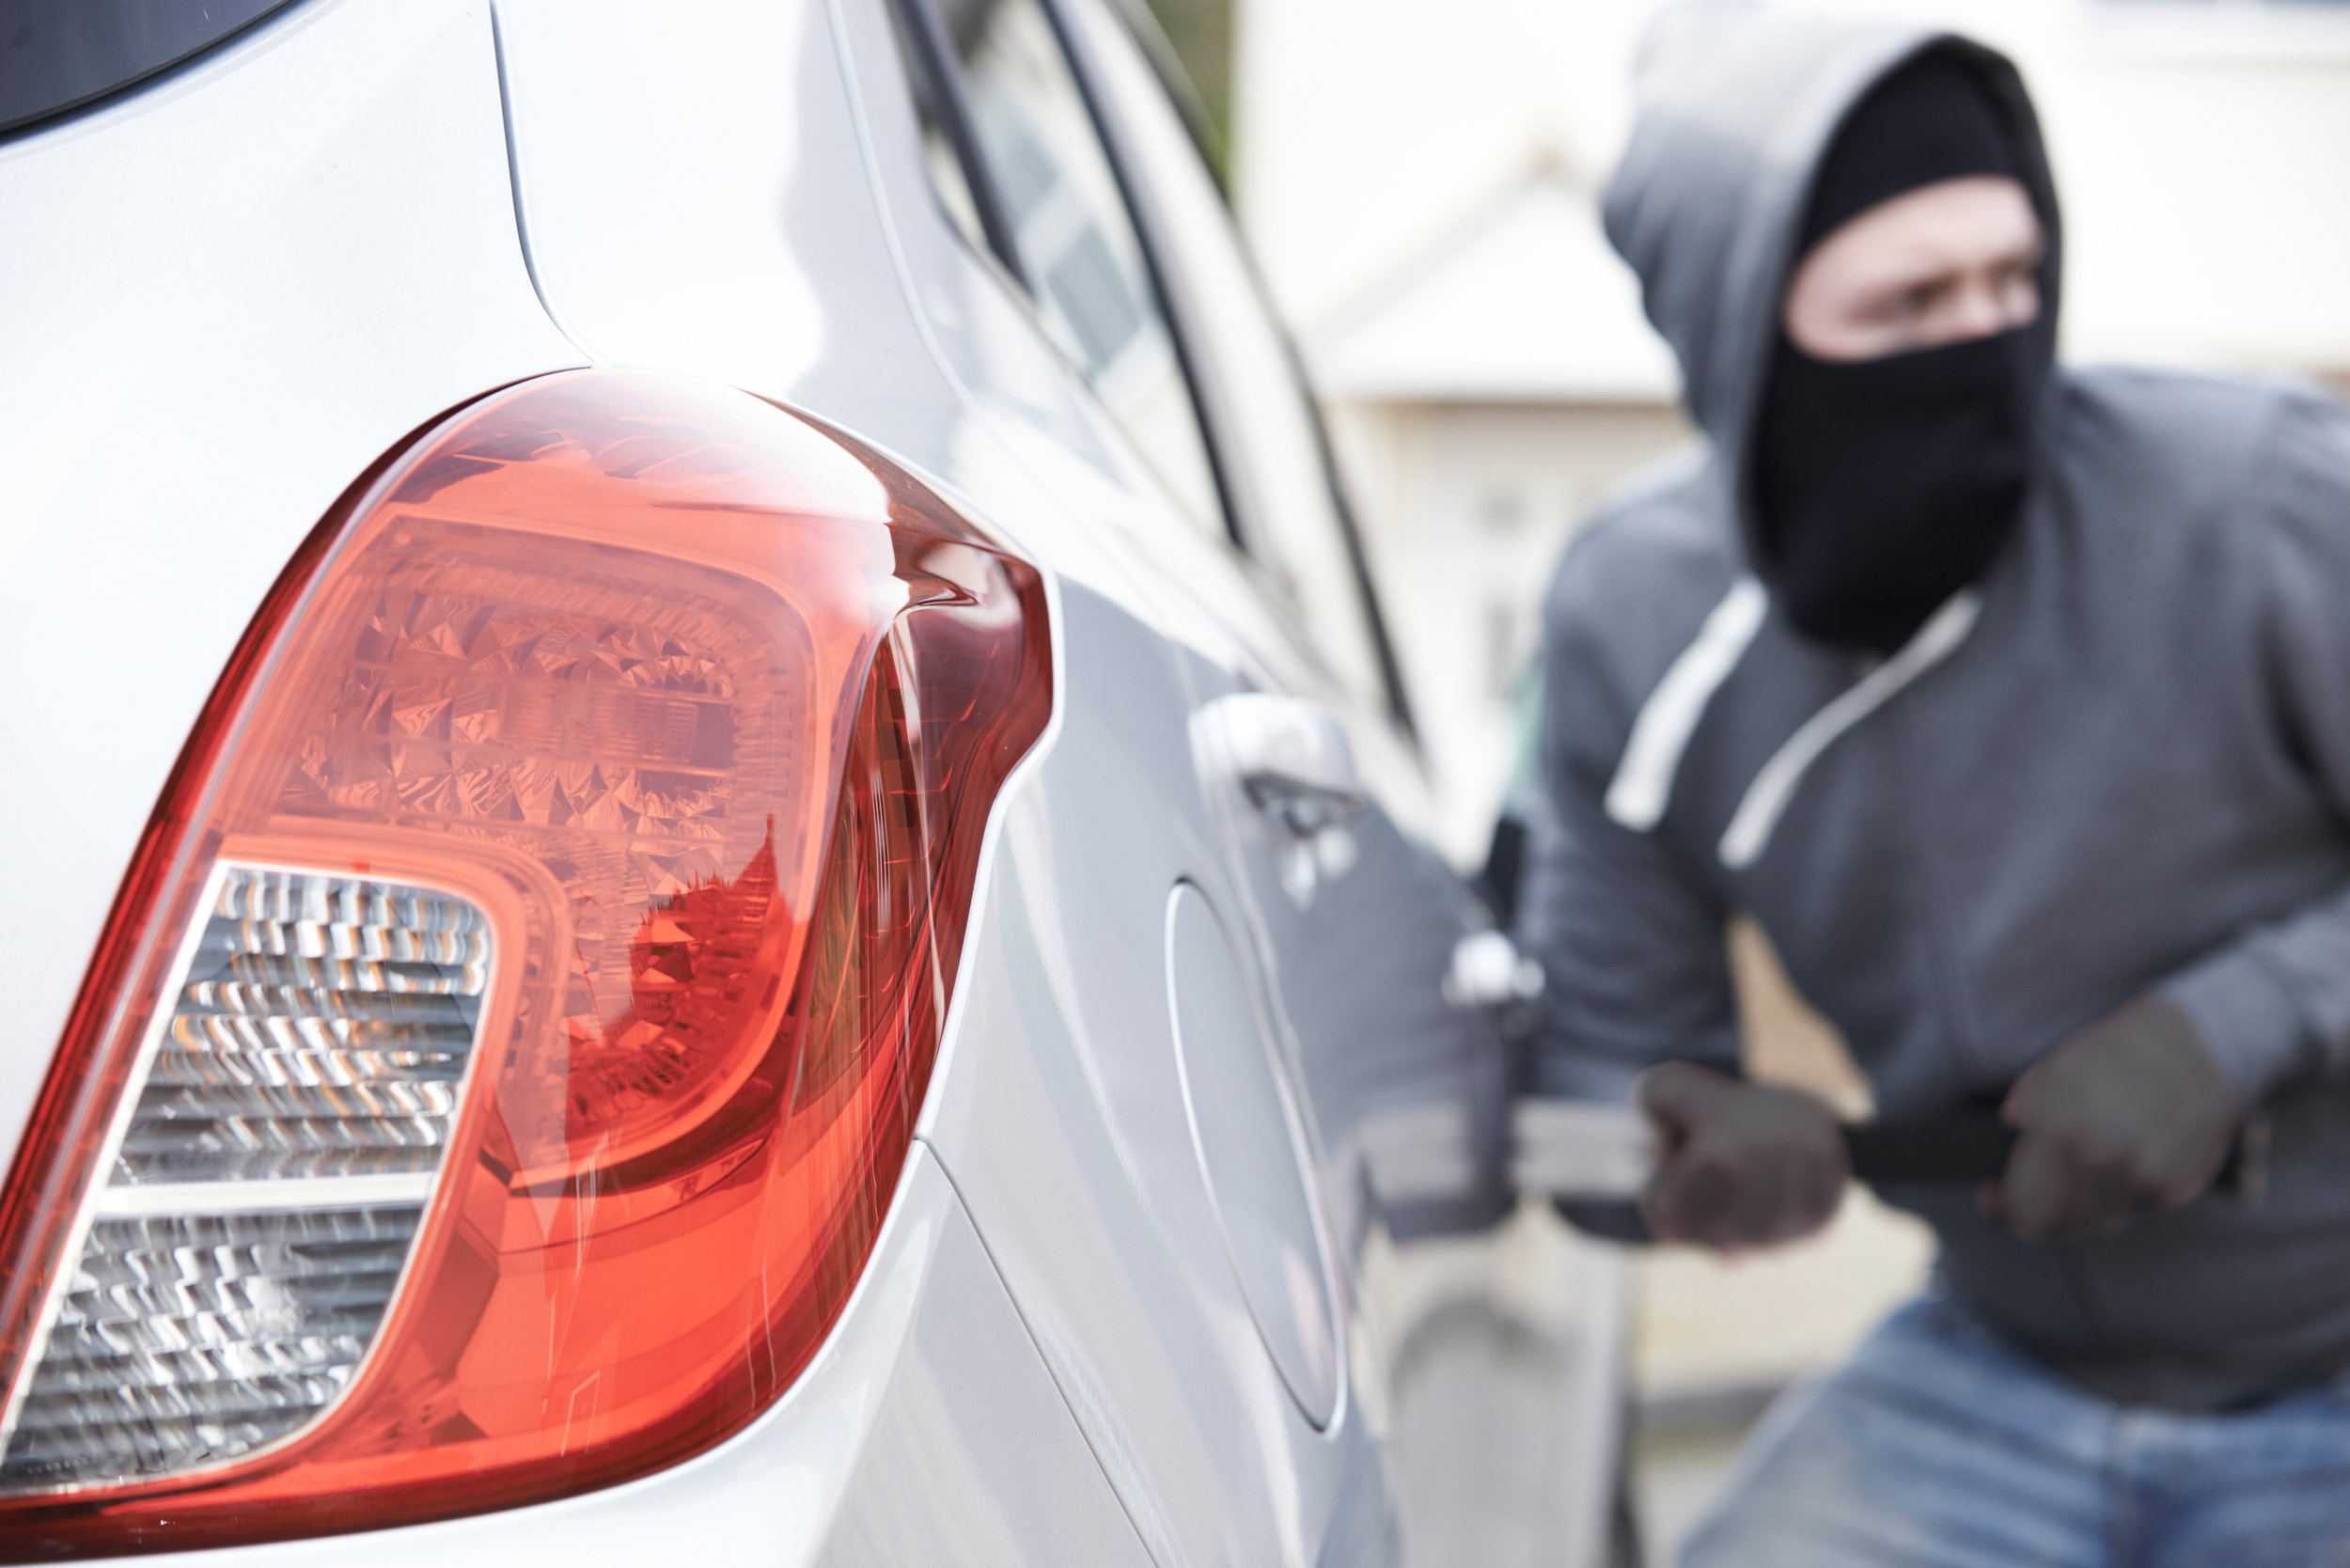 Theft deterrent - Theft has evolved with modern technology. It's not just your vehicle at risk anymore. EDS helps protect your vehicle, your personal information and more with our Shadow ID labels, Window Etch, GPS, and Magic's starter interrupt theft deterrent systems.